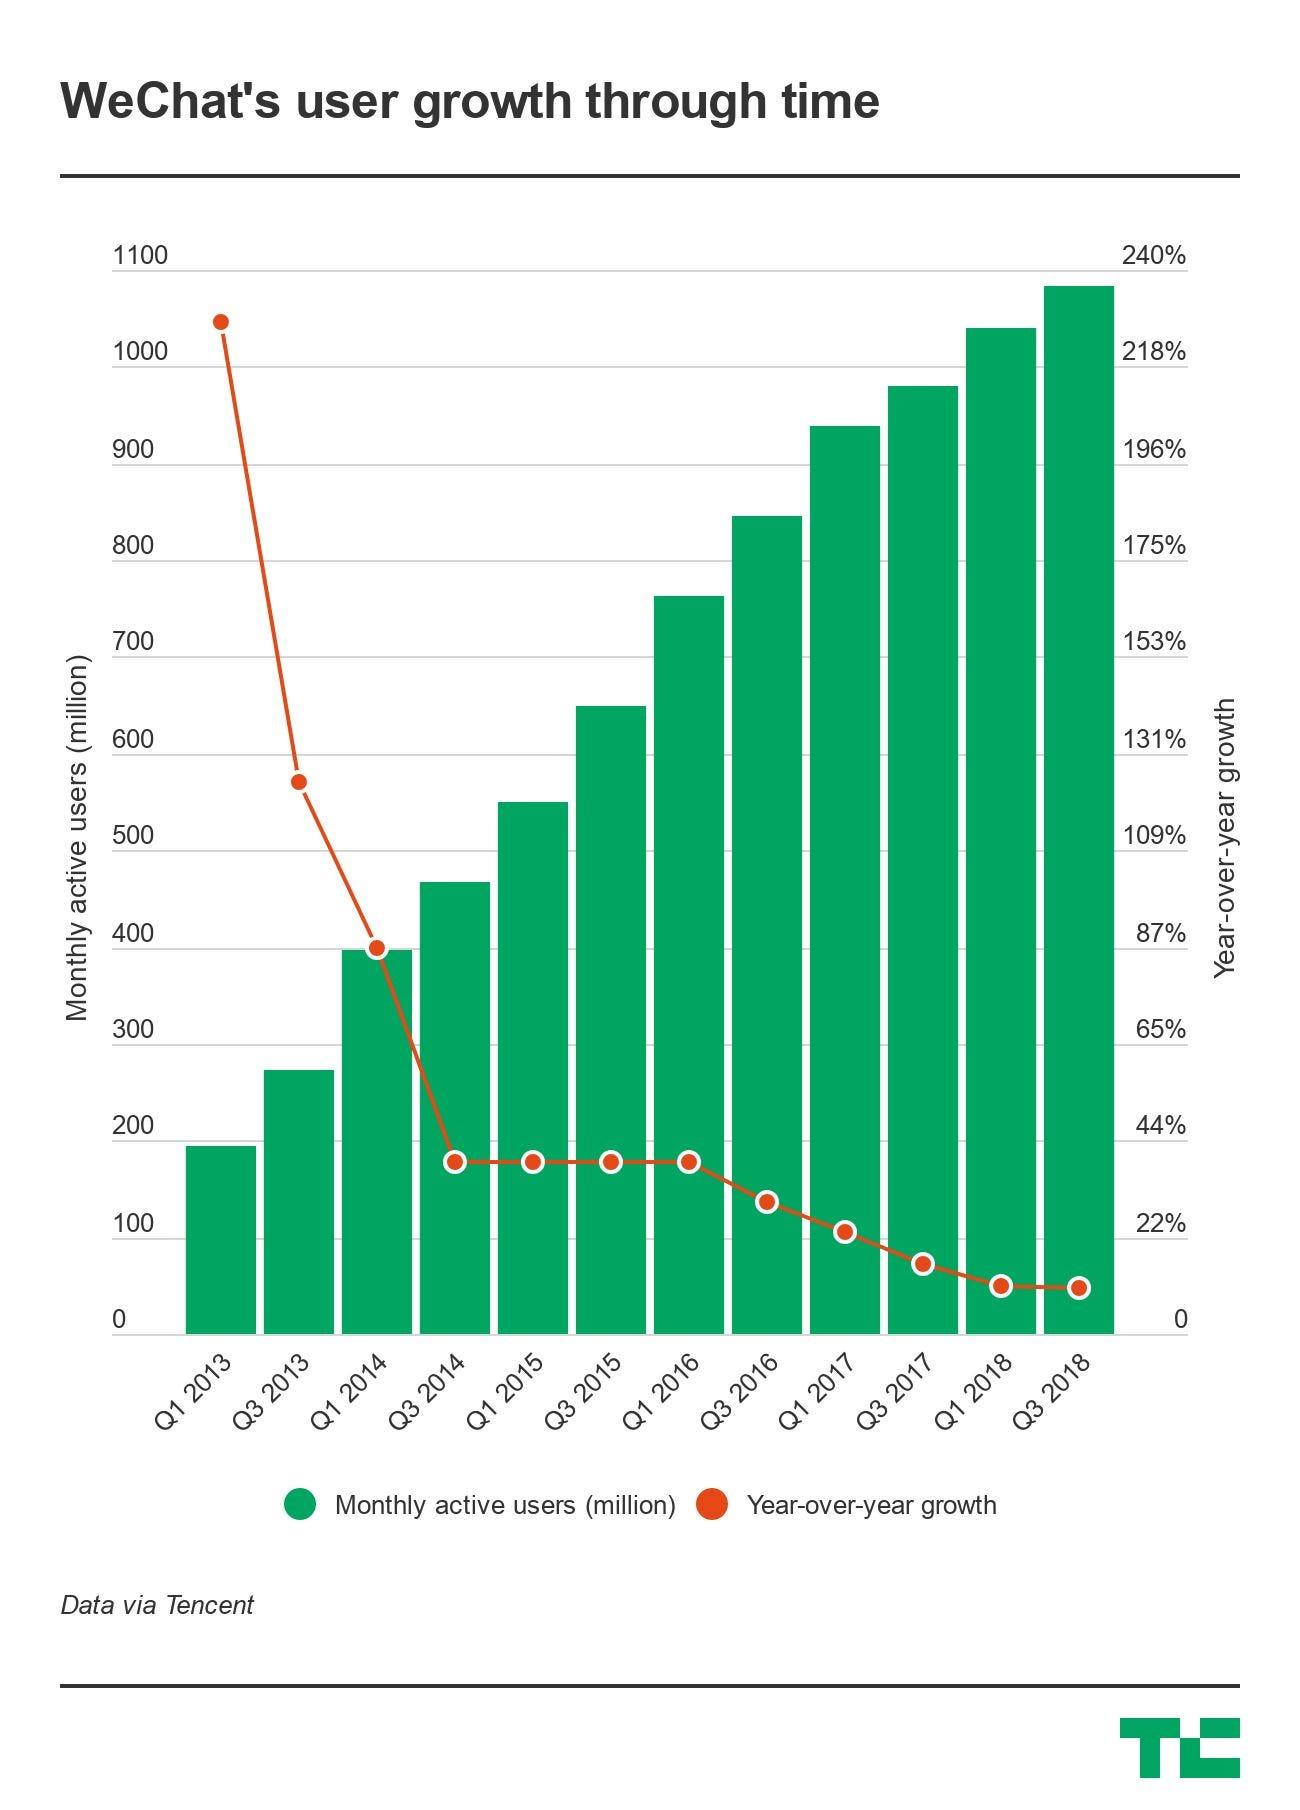 wechat growth